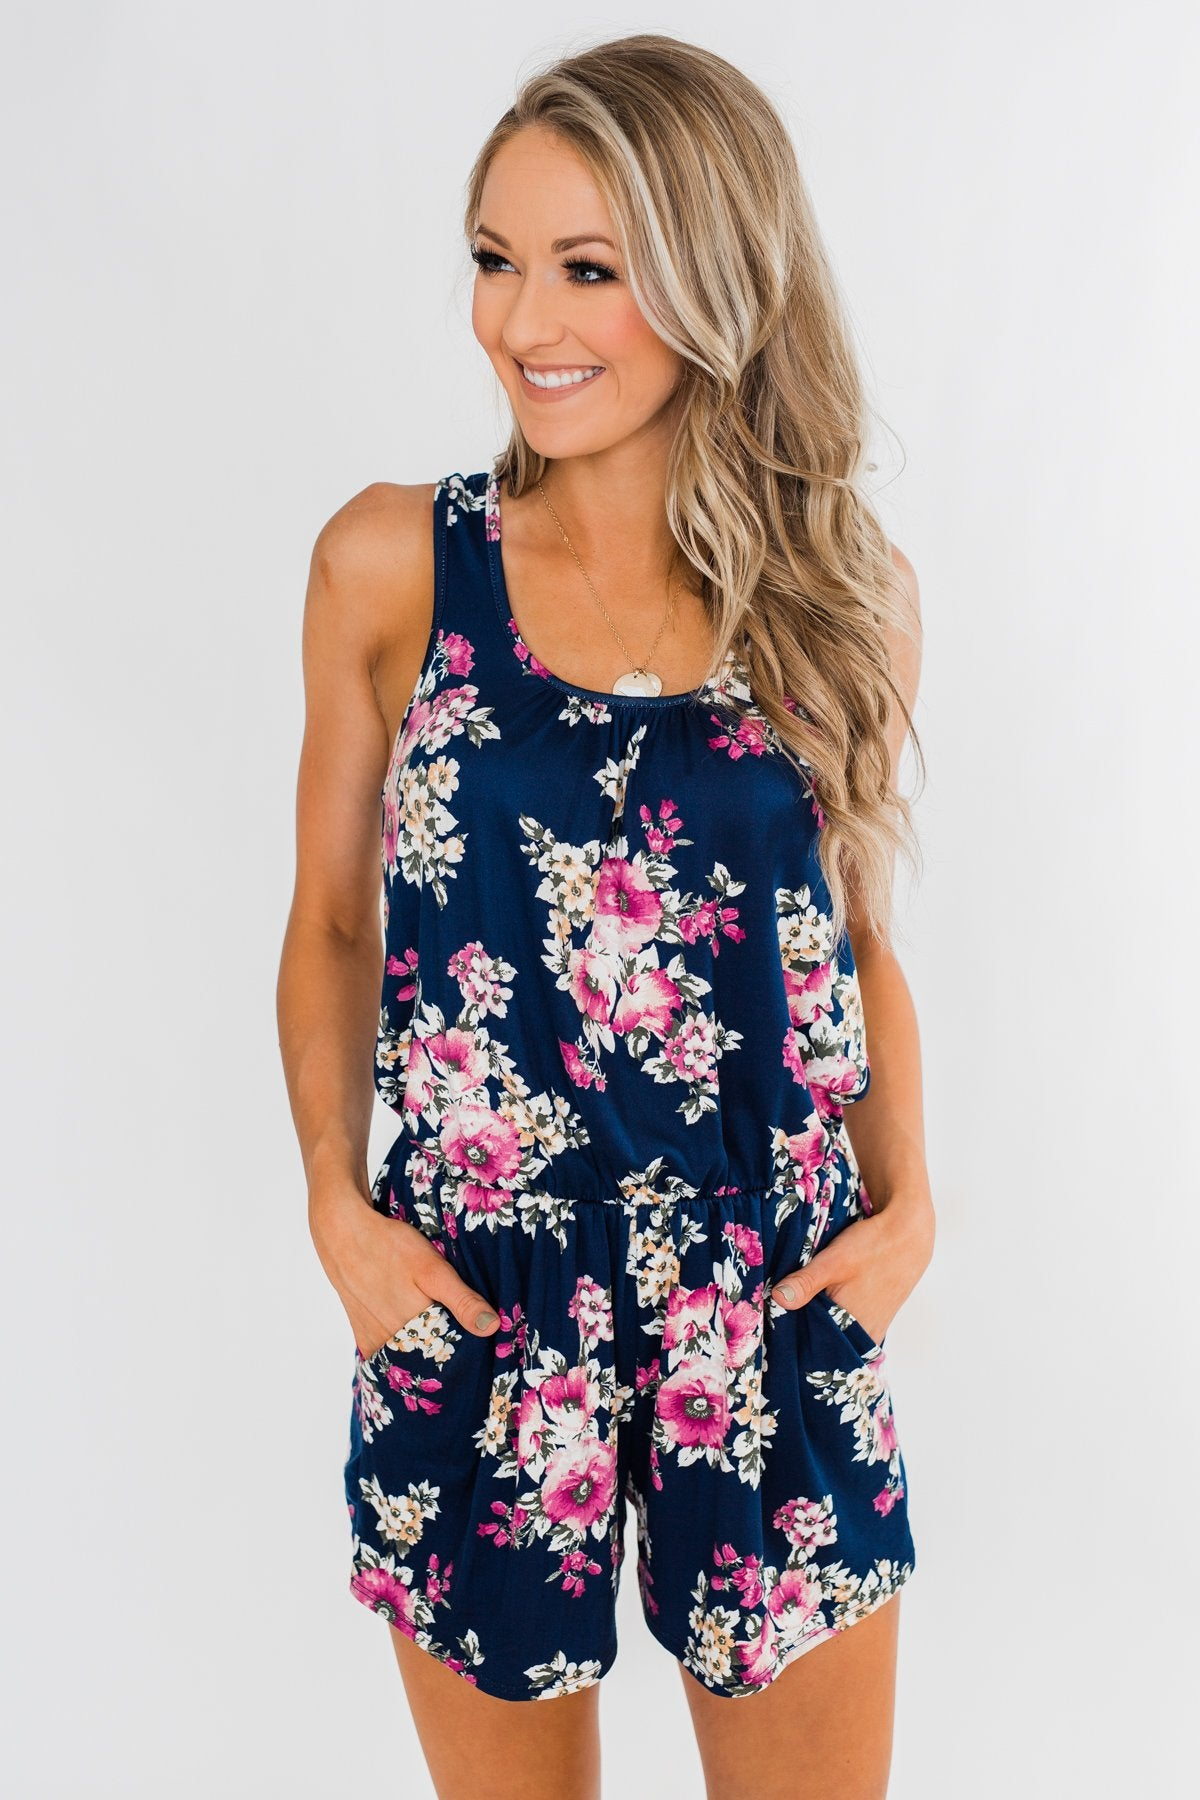 Keep My Love Floral Sleeveless Romper- Navy